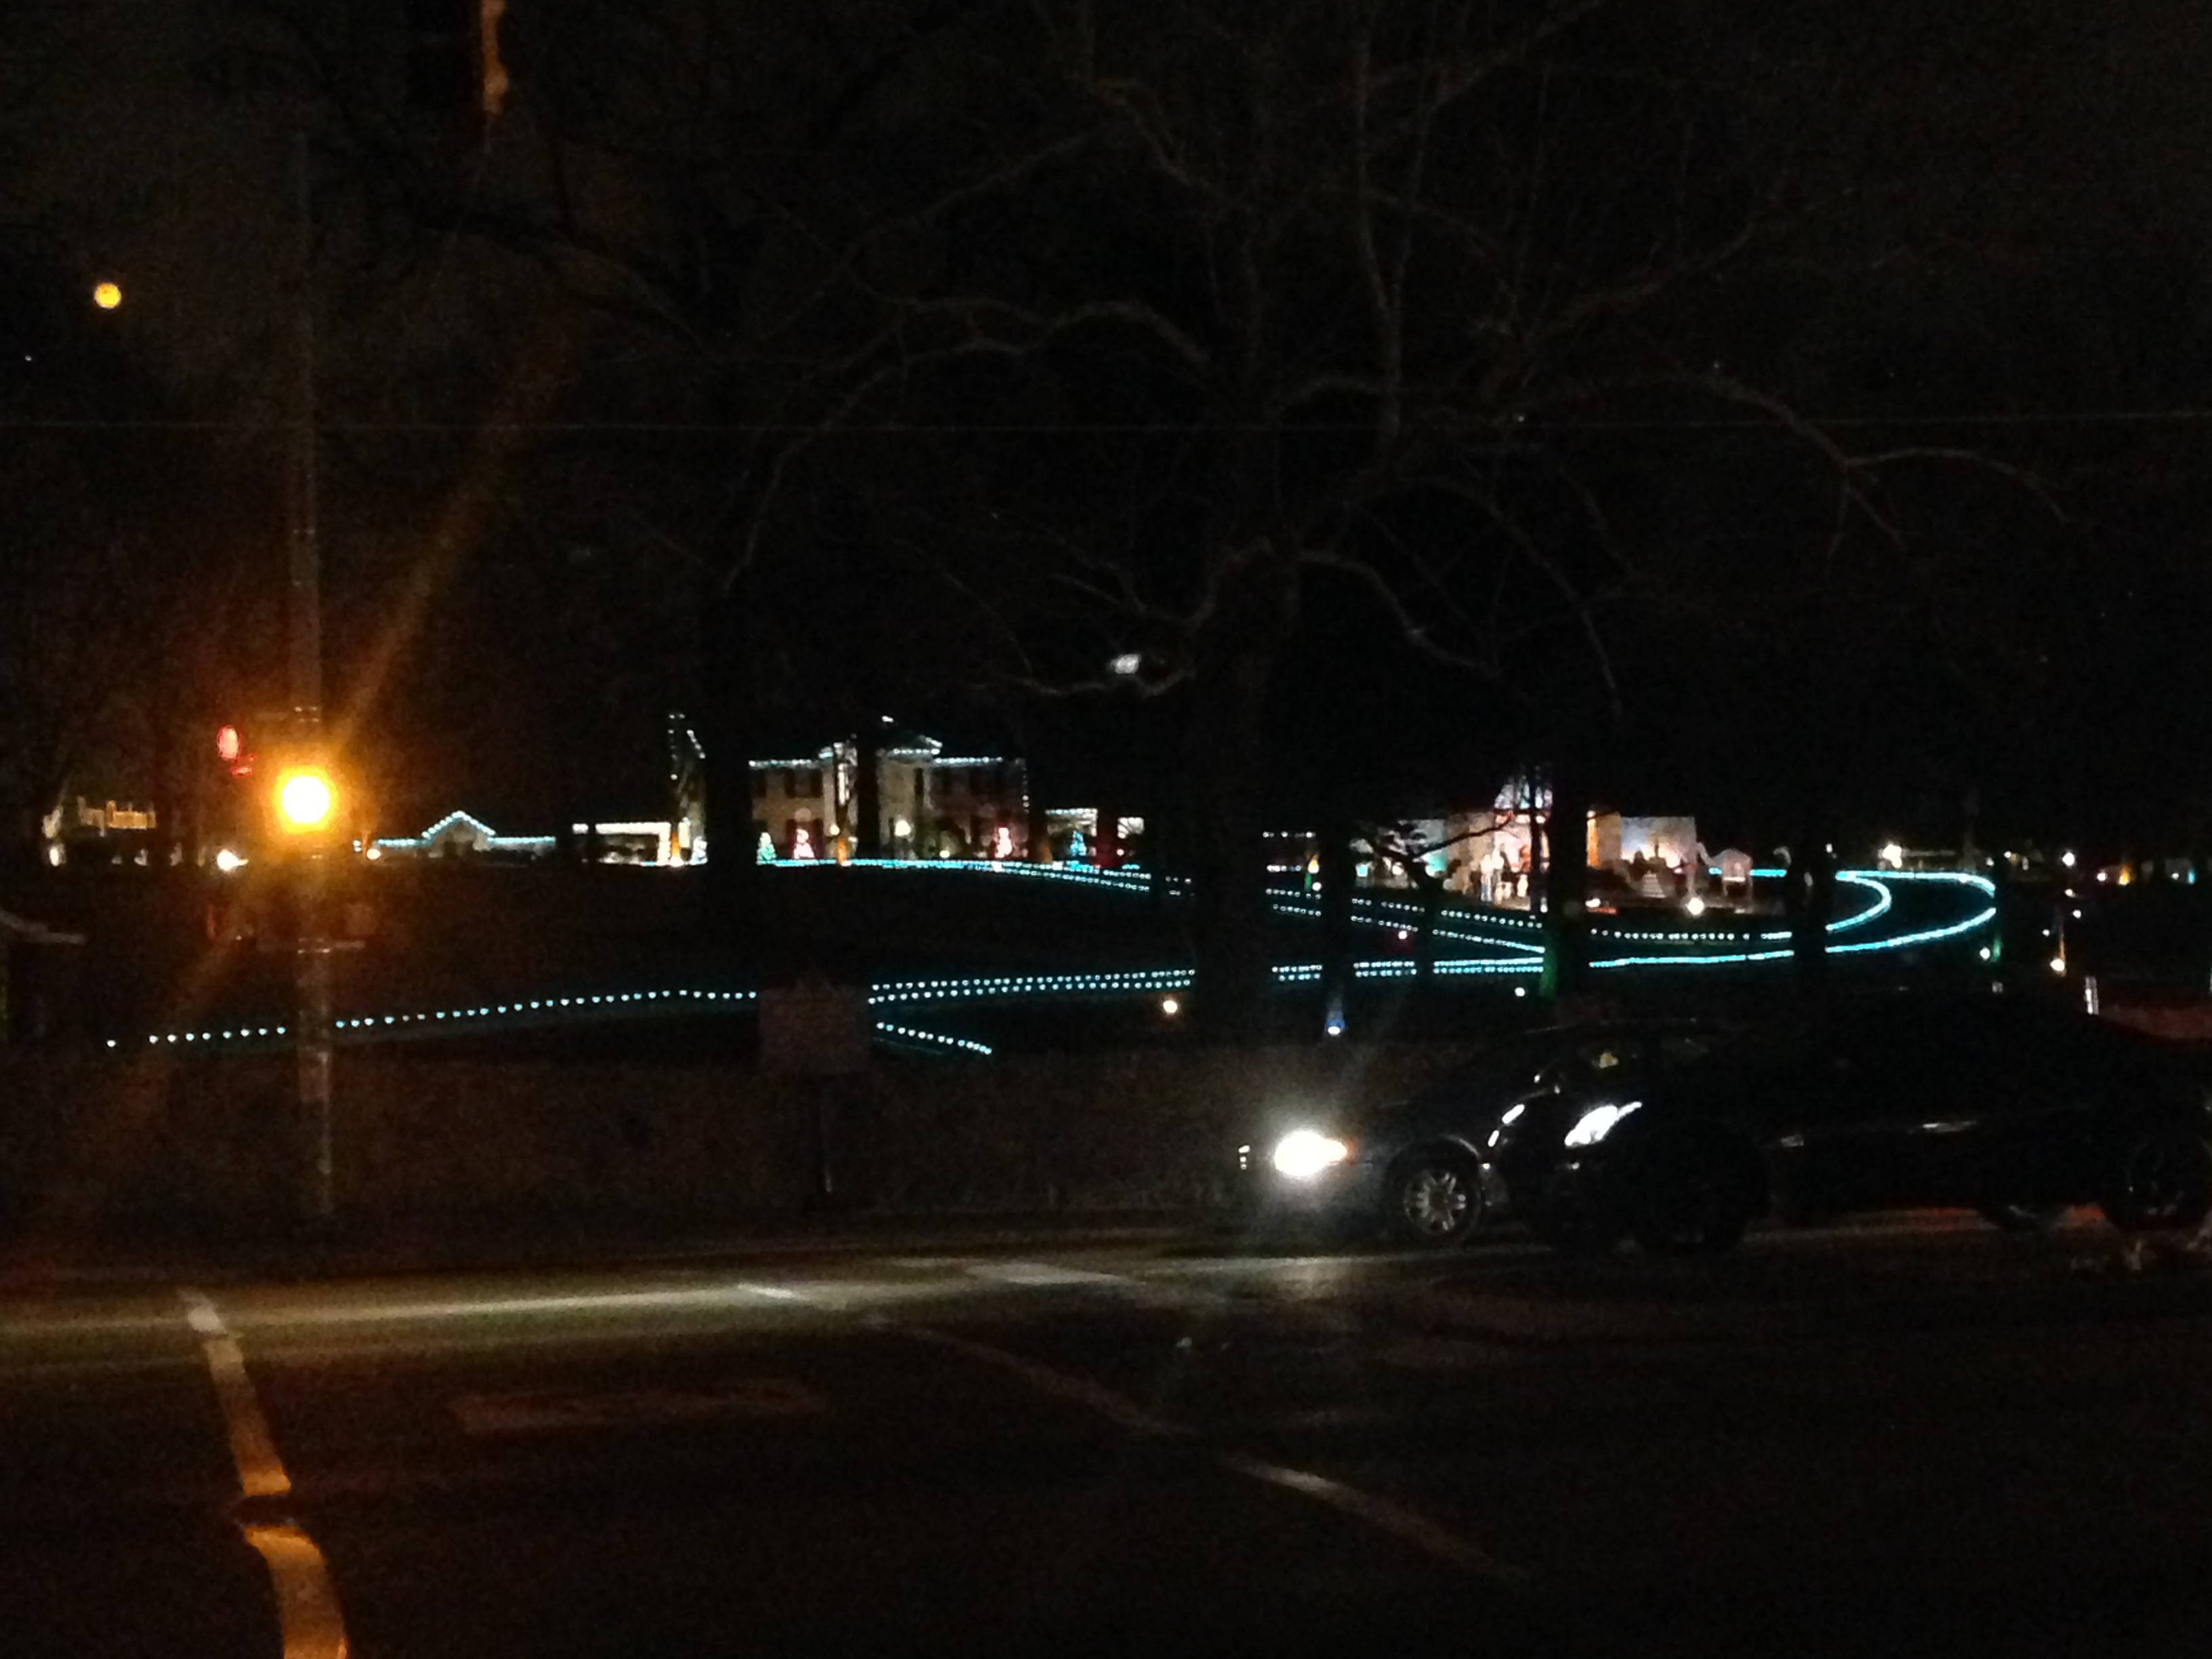 Graceland lit up with Christmas lights